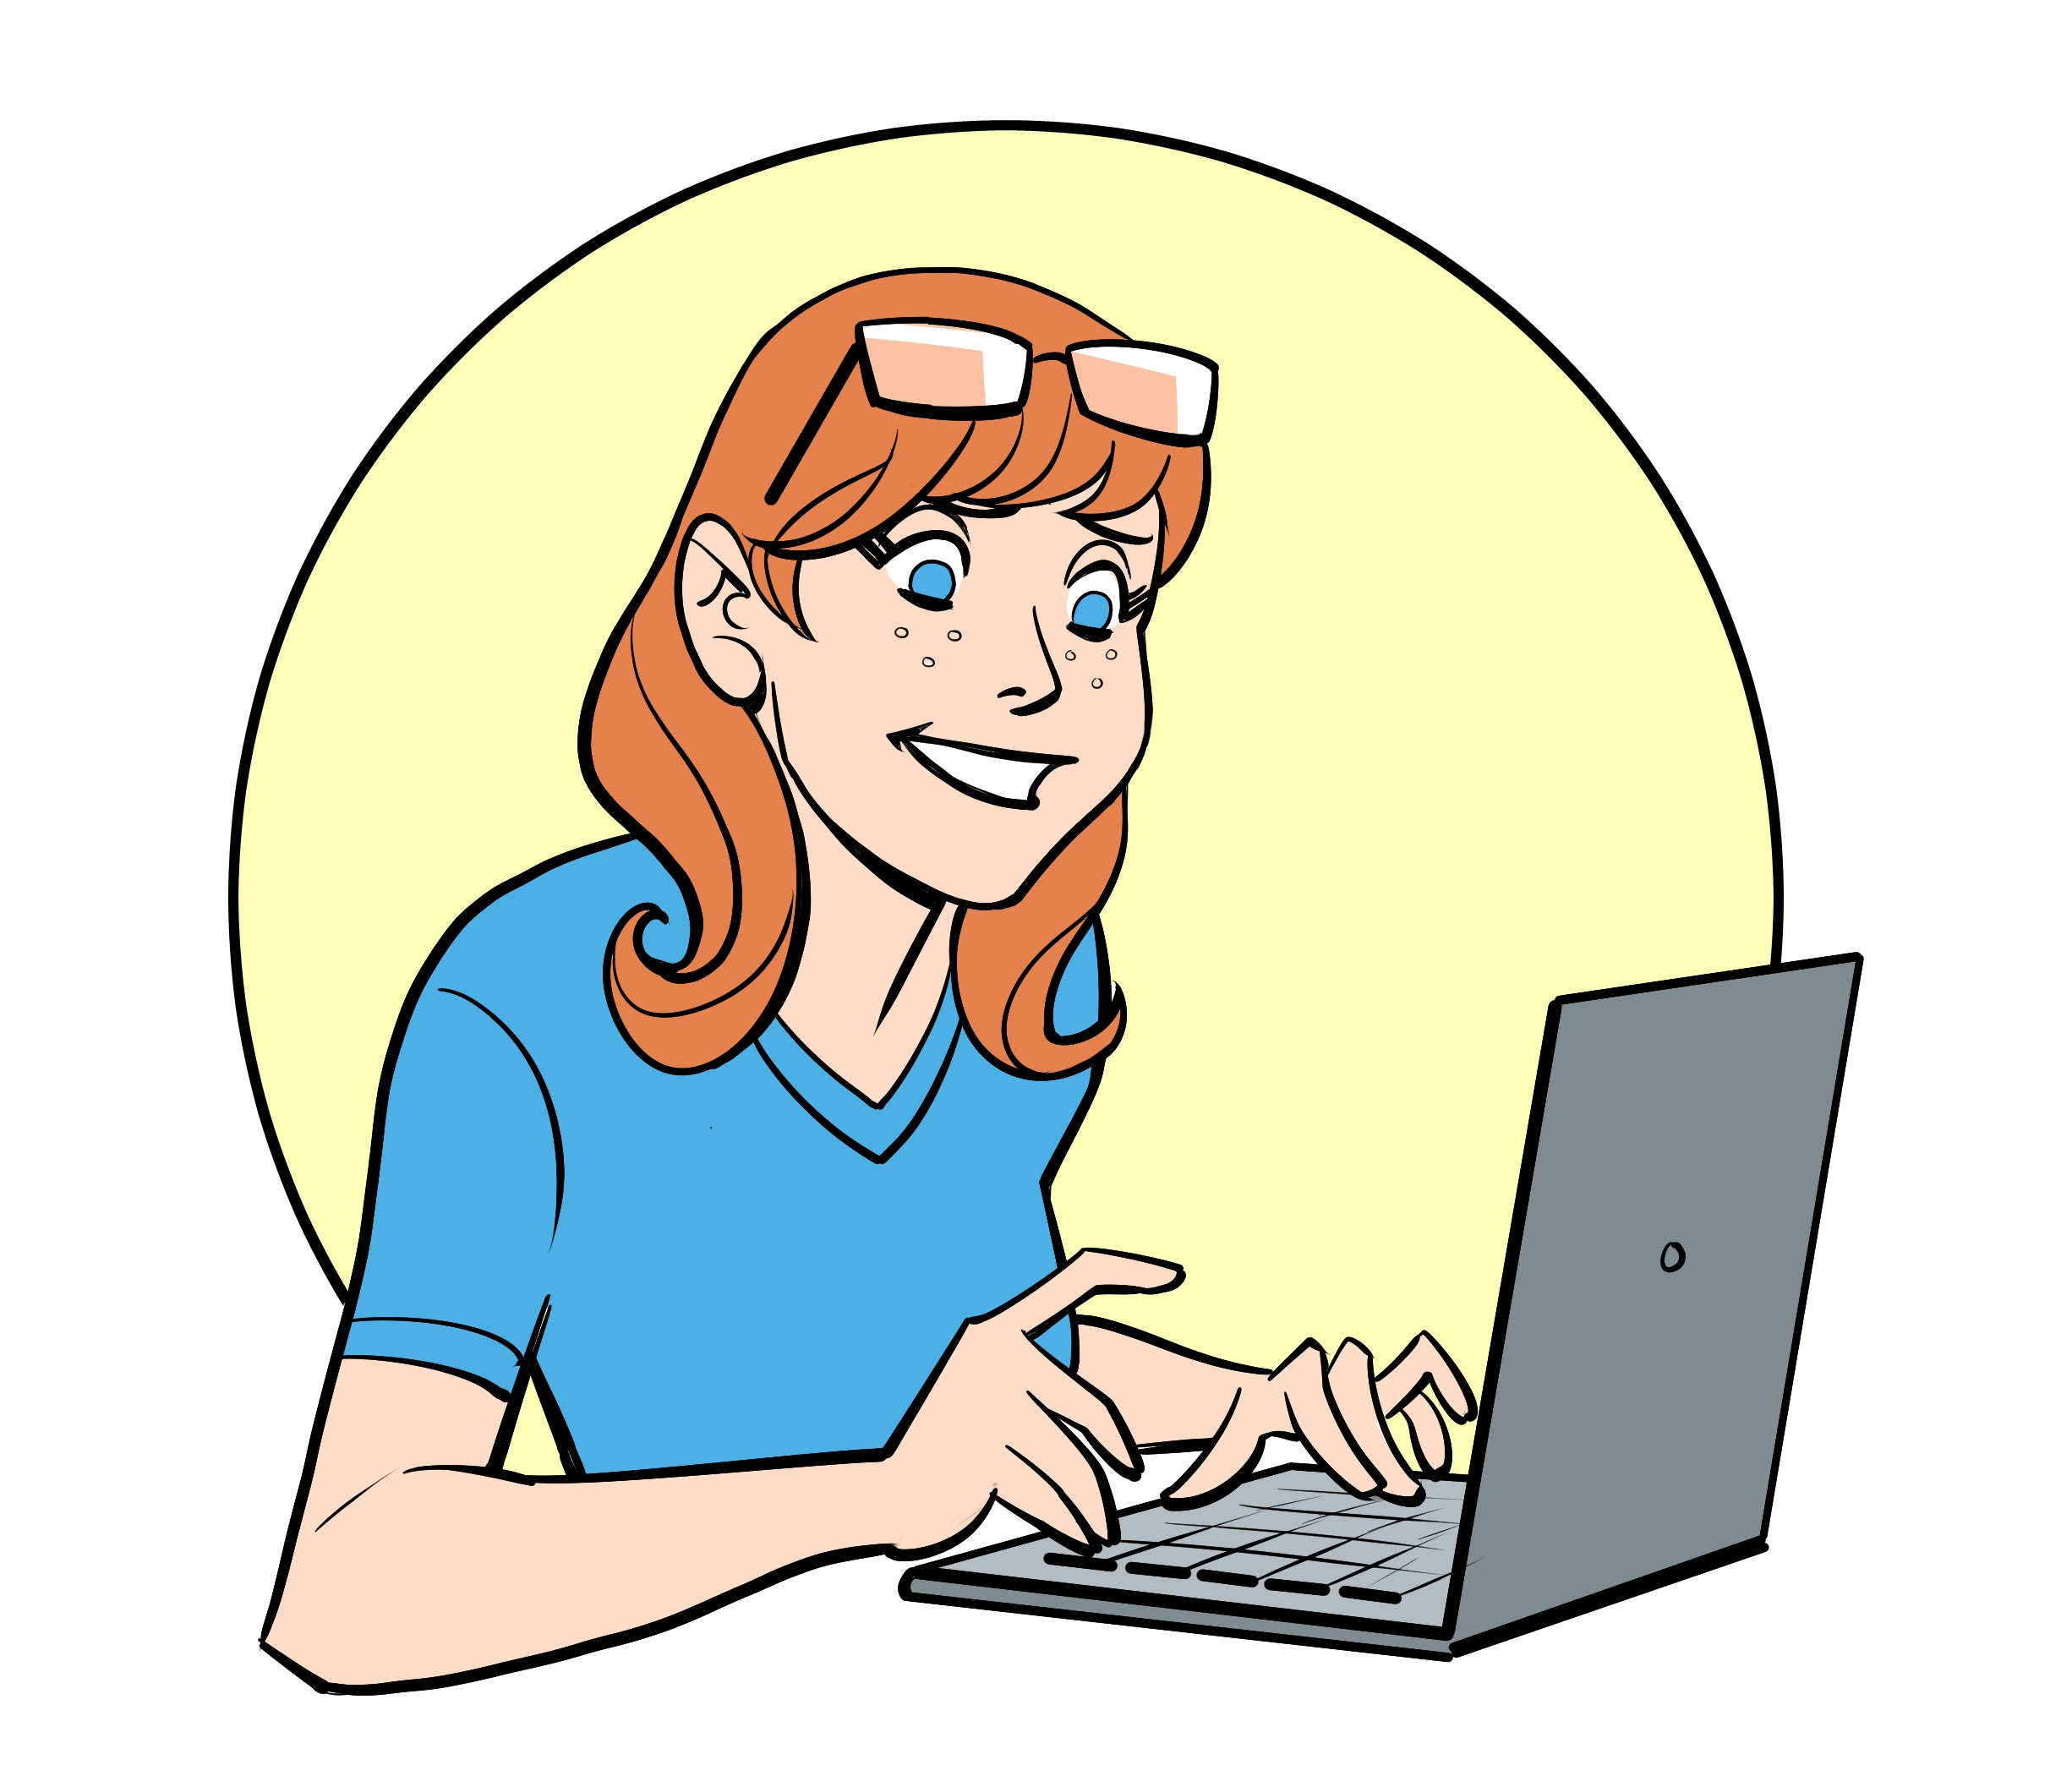 woman-writer-typing-cartoon